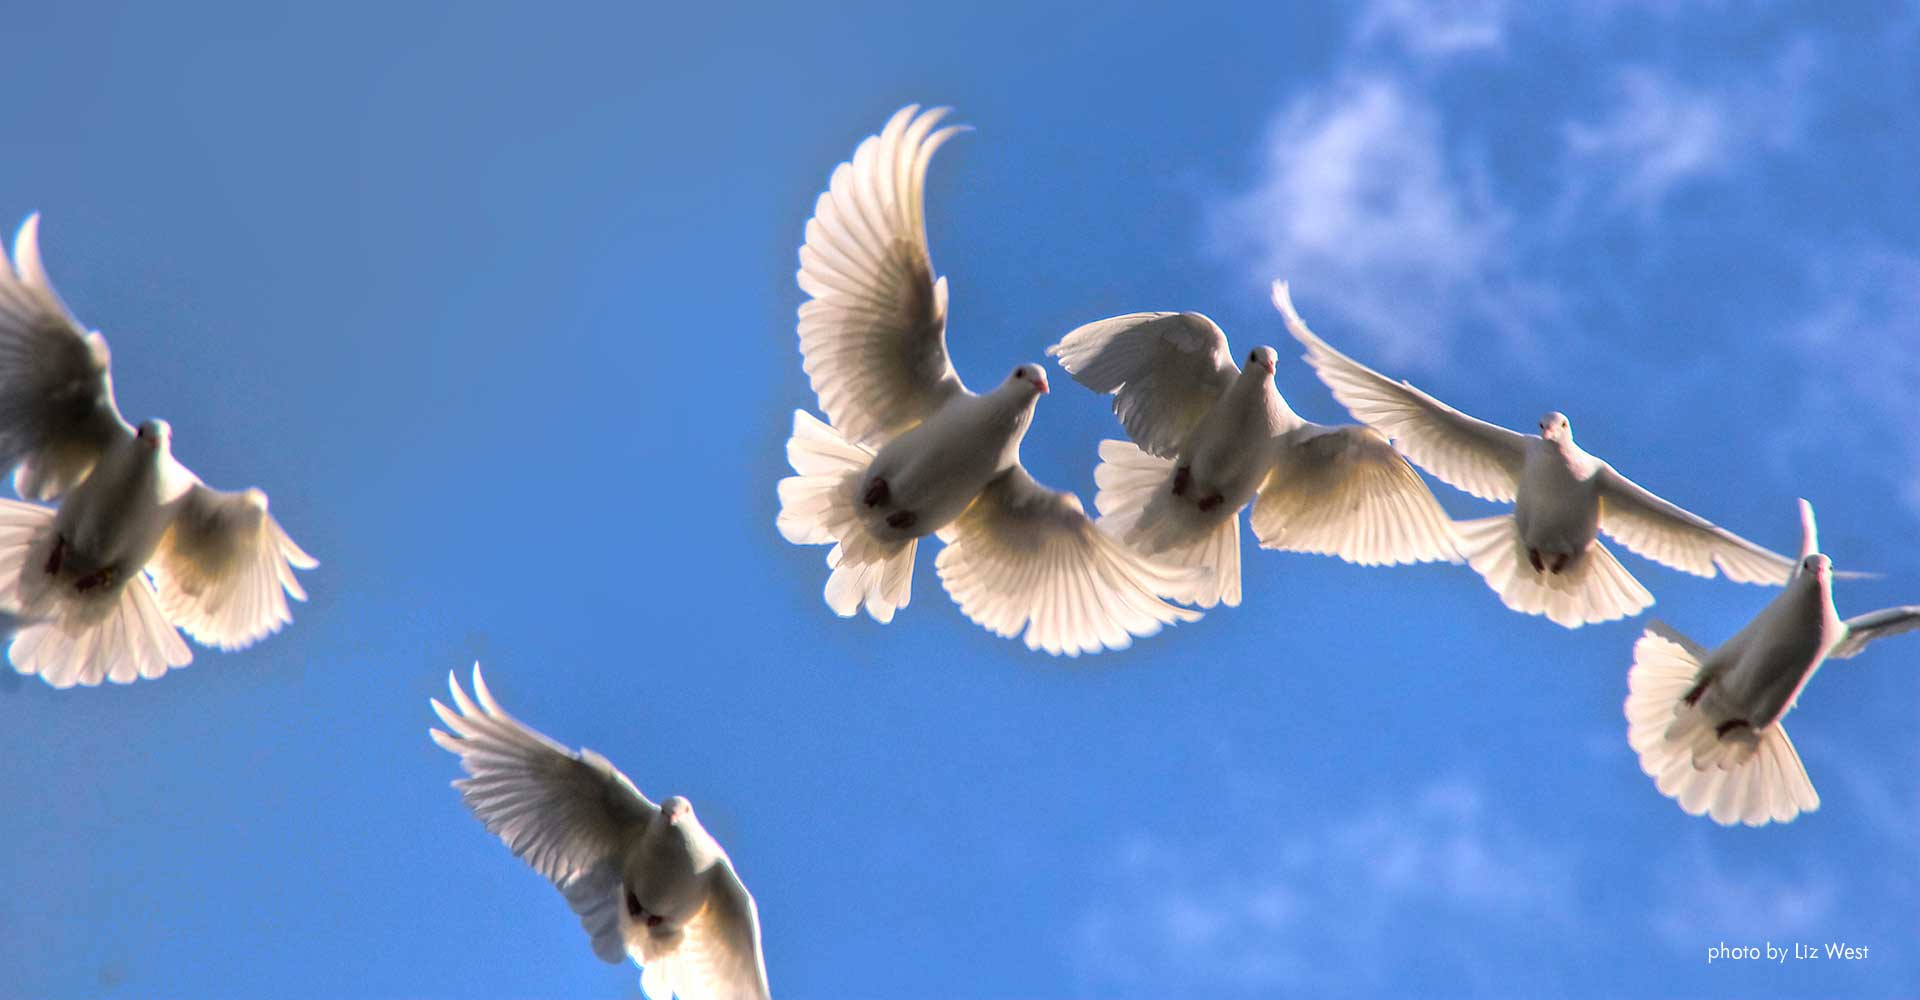 doves by liz west